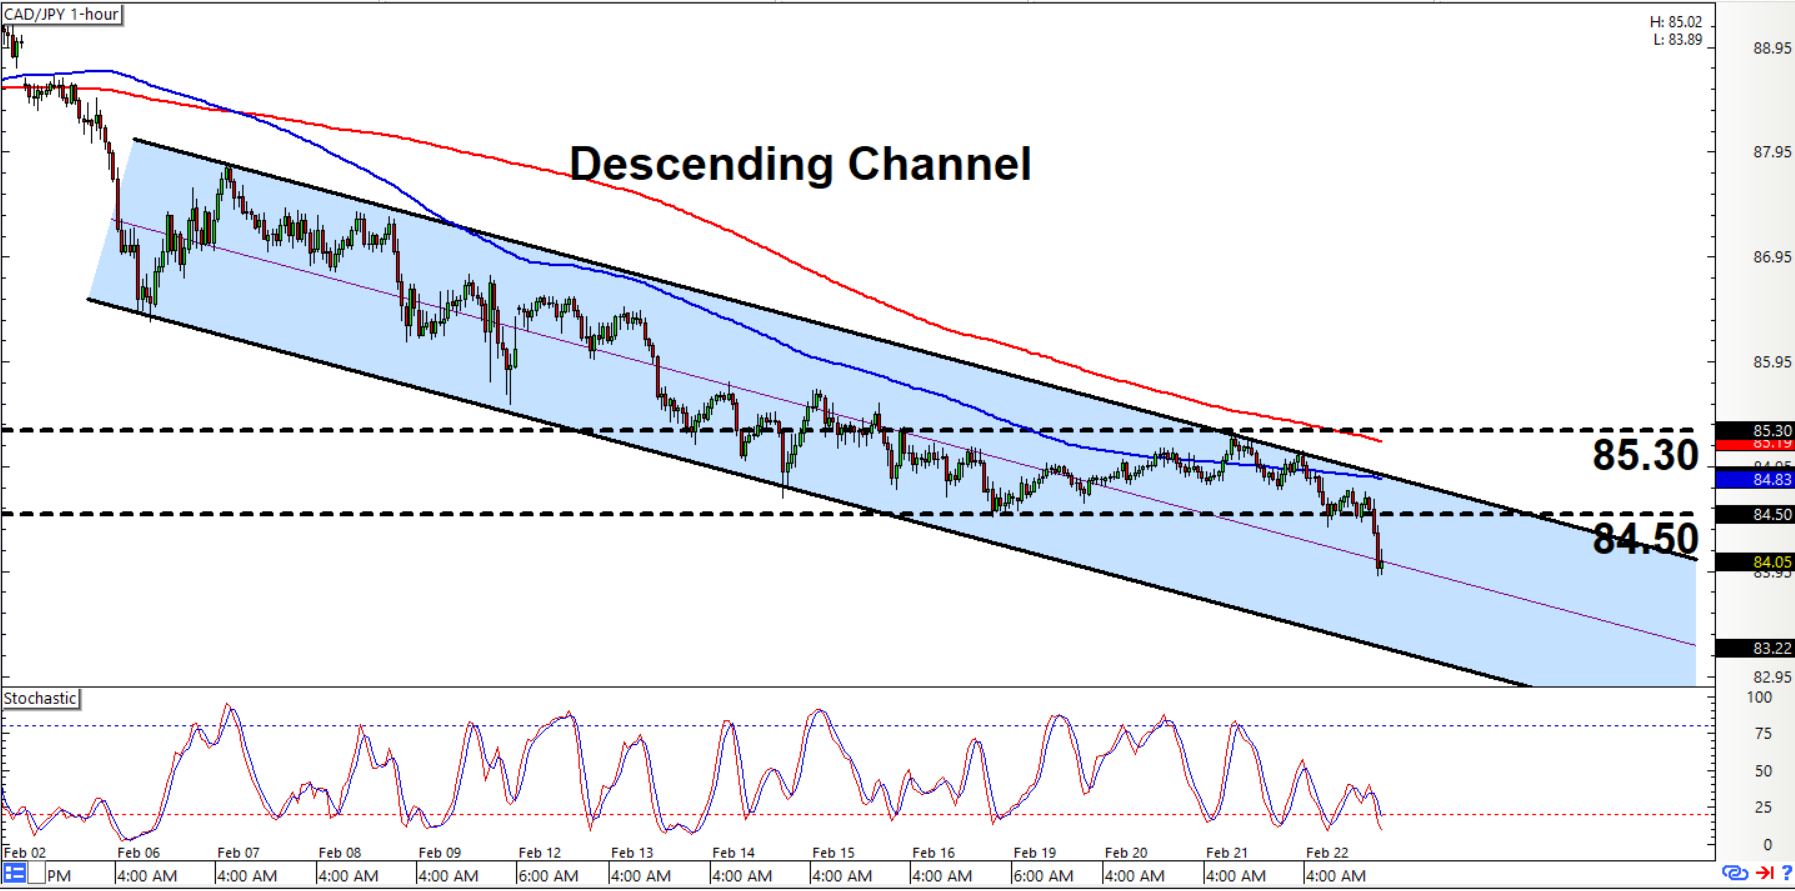 Usd/cad live forex chart